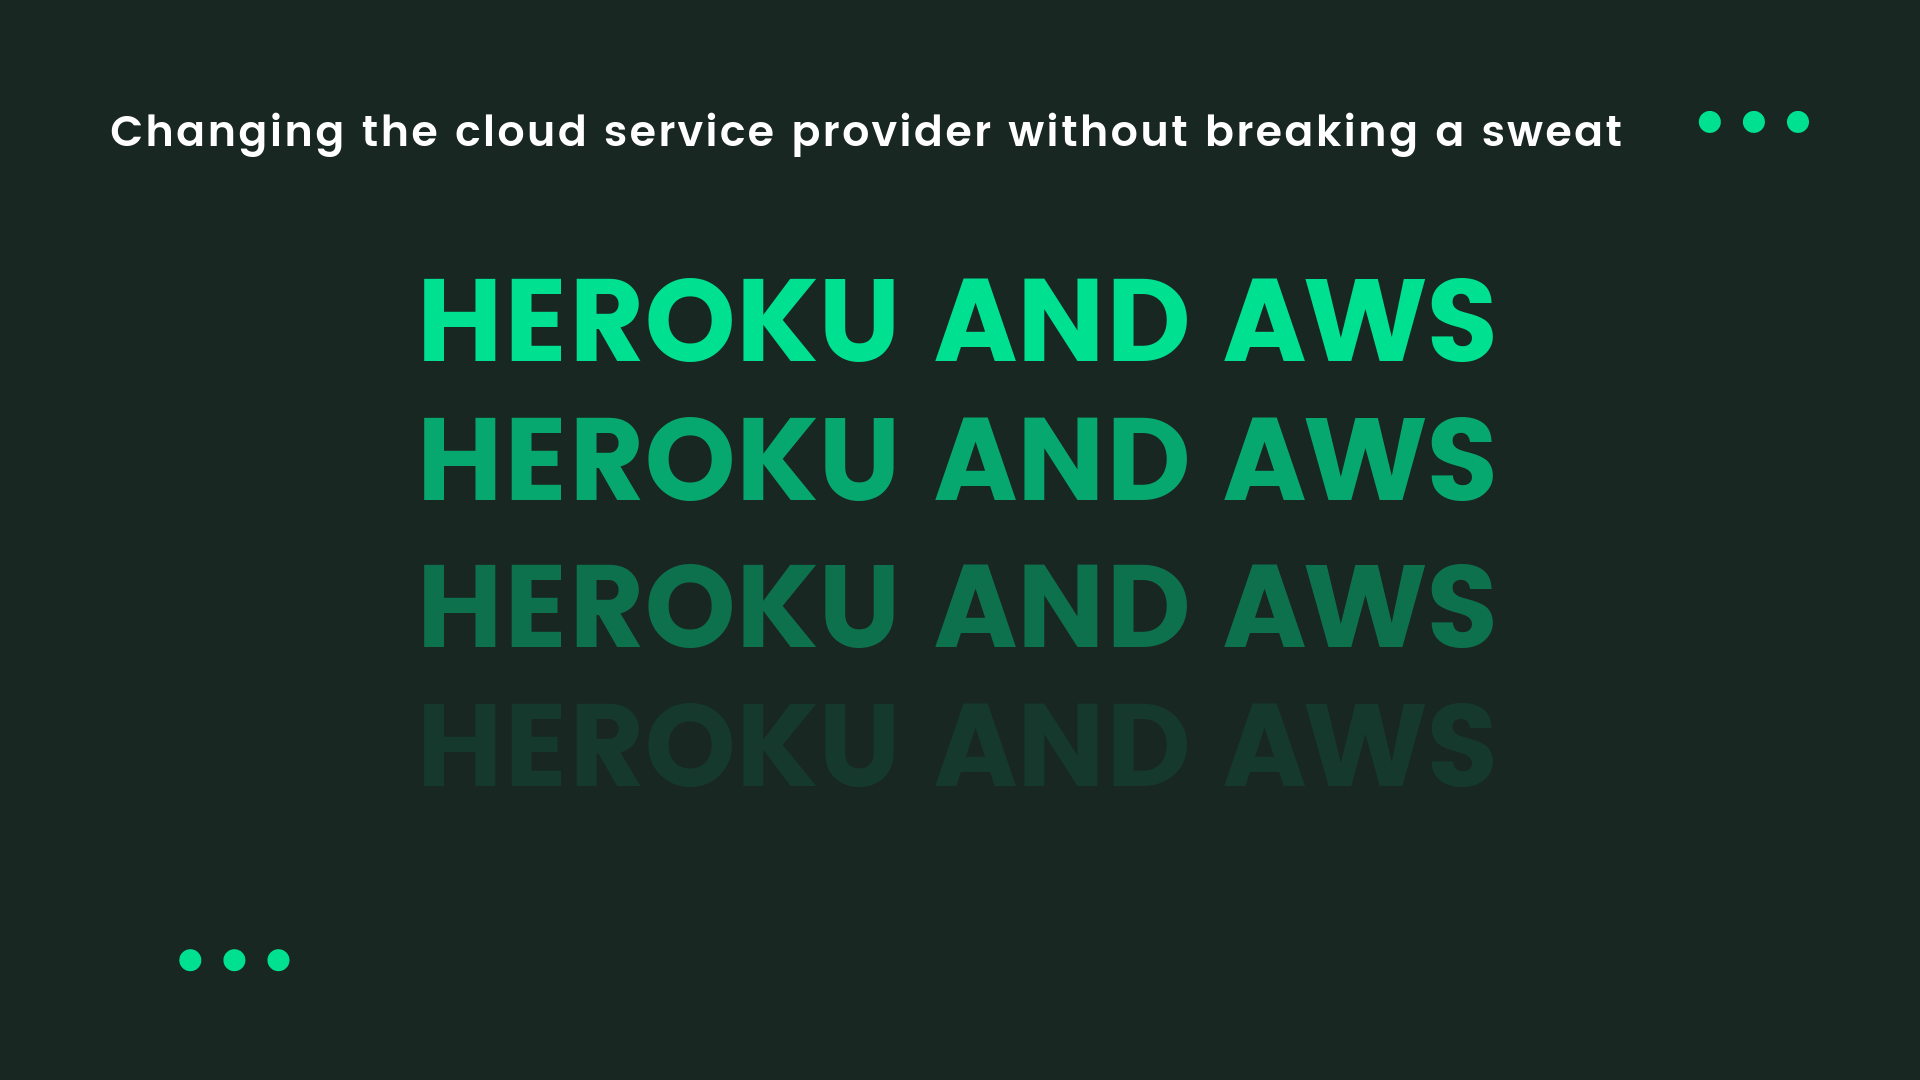 Heroku vs AWS and migration from Heroku to AWS - our story of cloud service provider change without stopping production